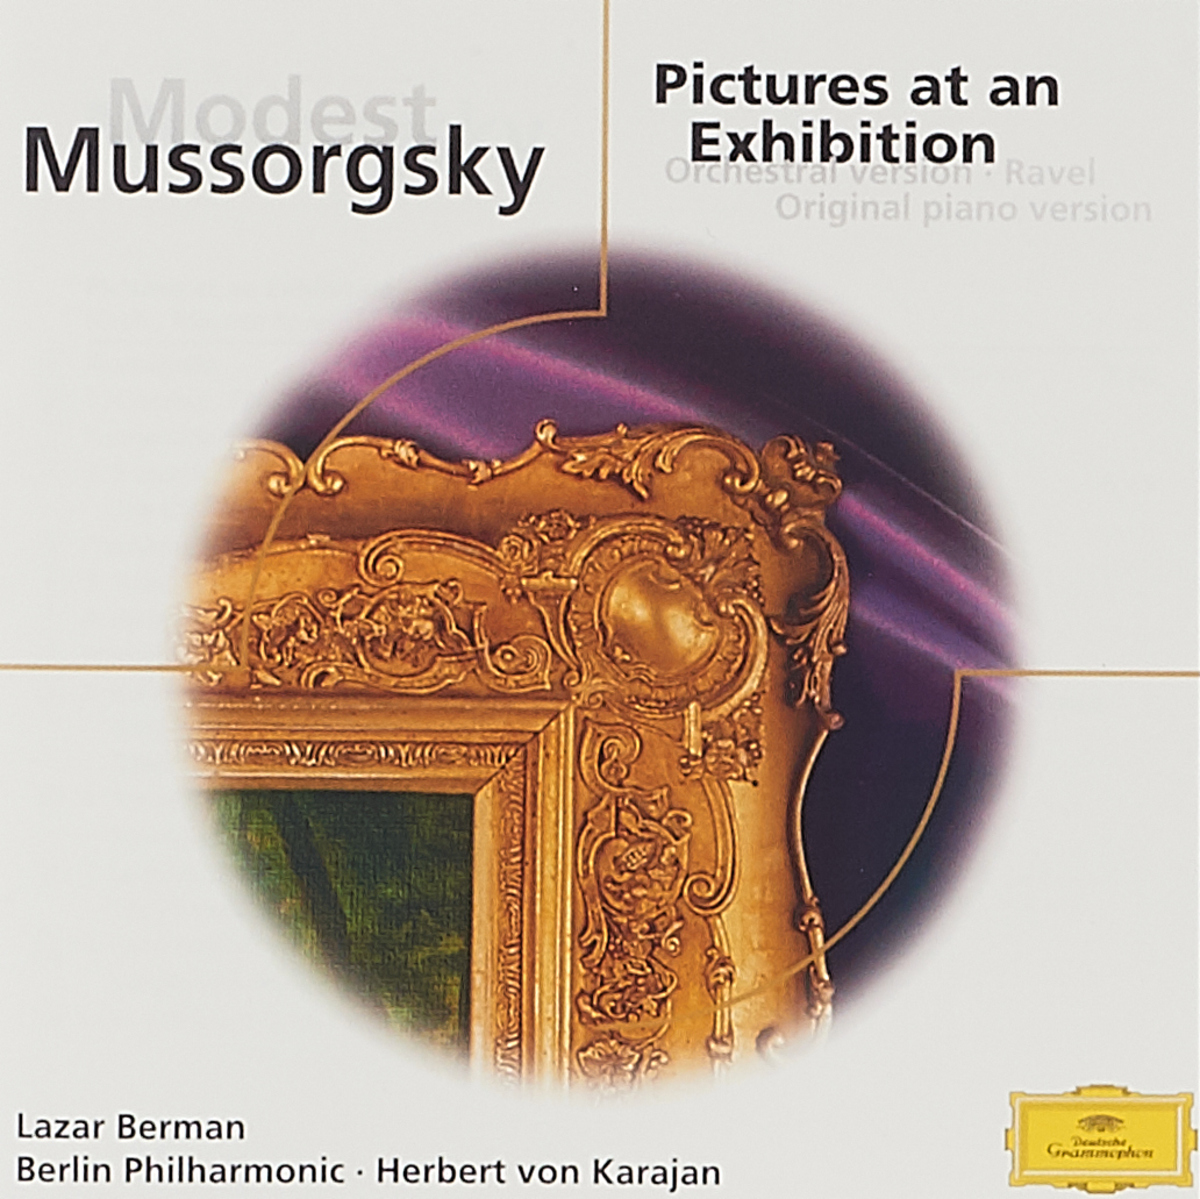 Lazar Berman. Modest Mussorgsky: Pictures at an Exhibition lazar khidekel and suprematism